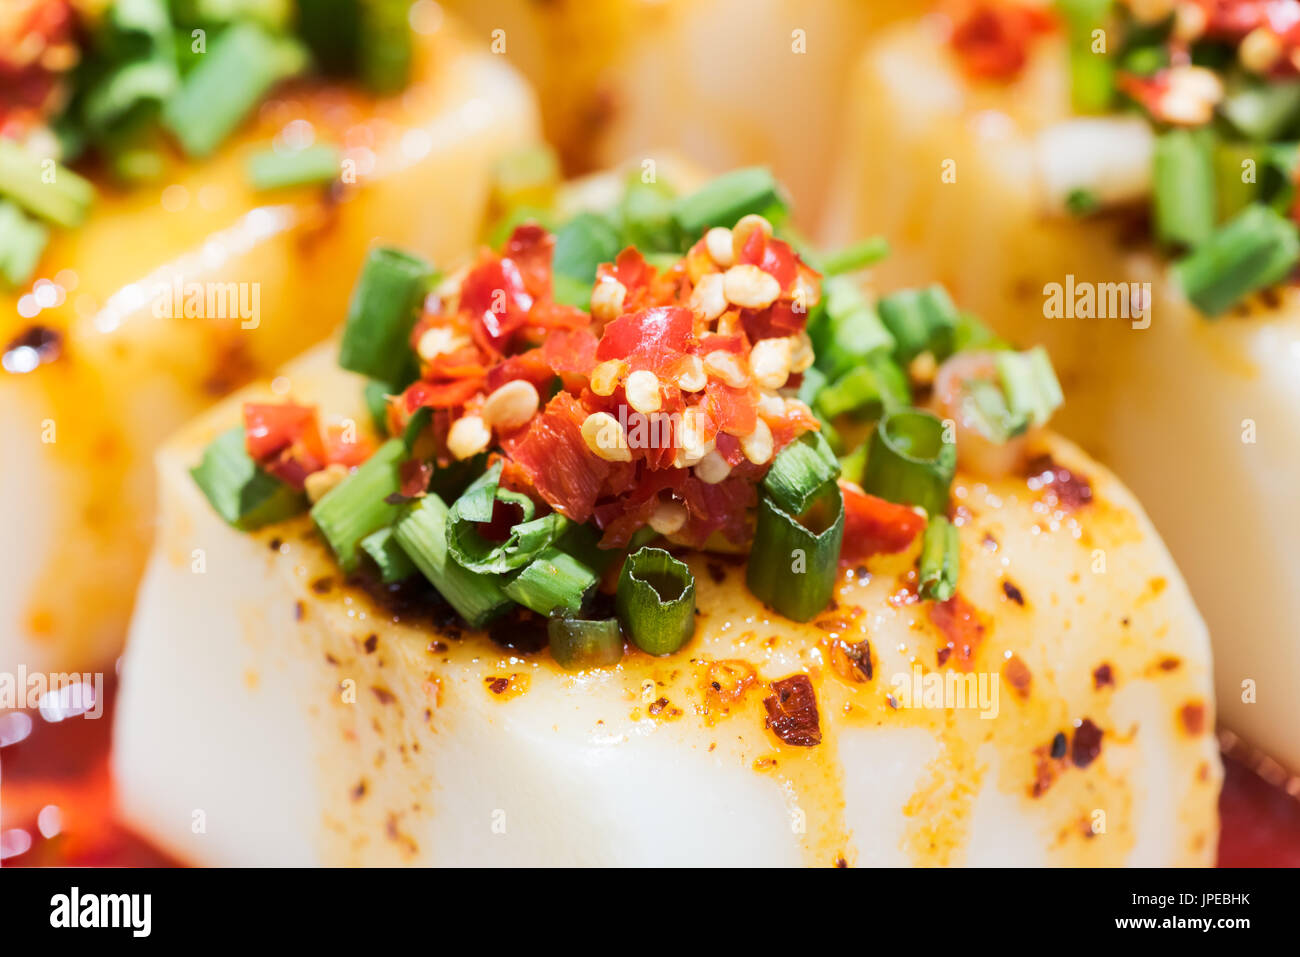 Tofu chinois avec sauce piment - chinese food Photo Stock